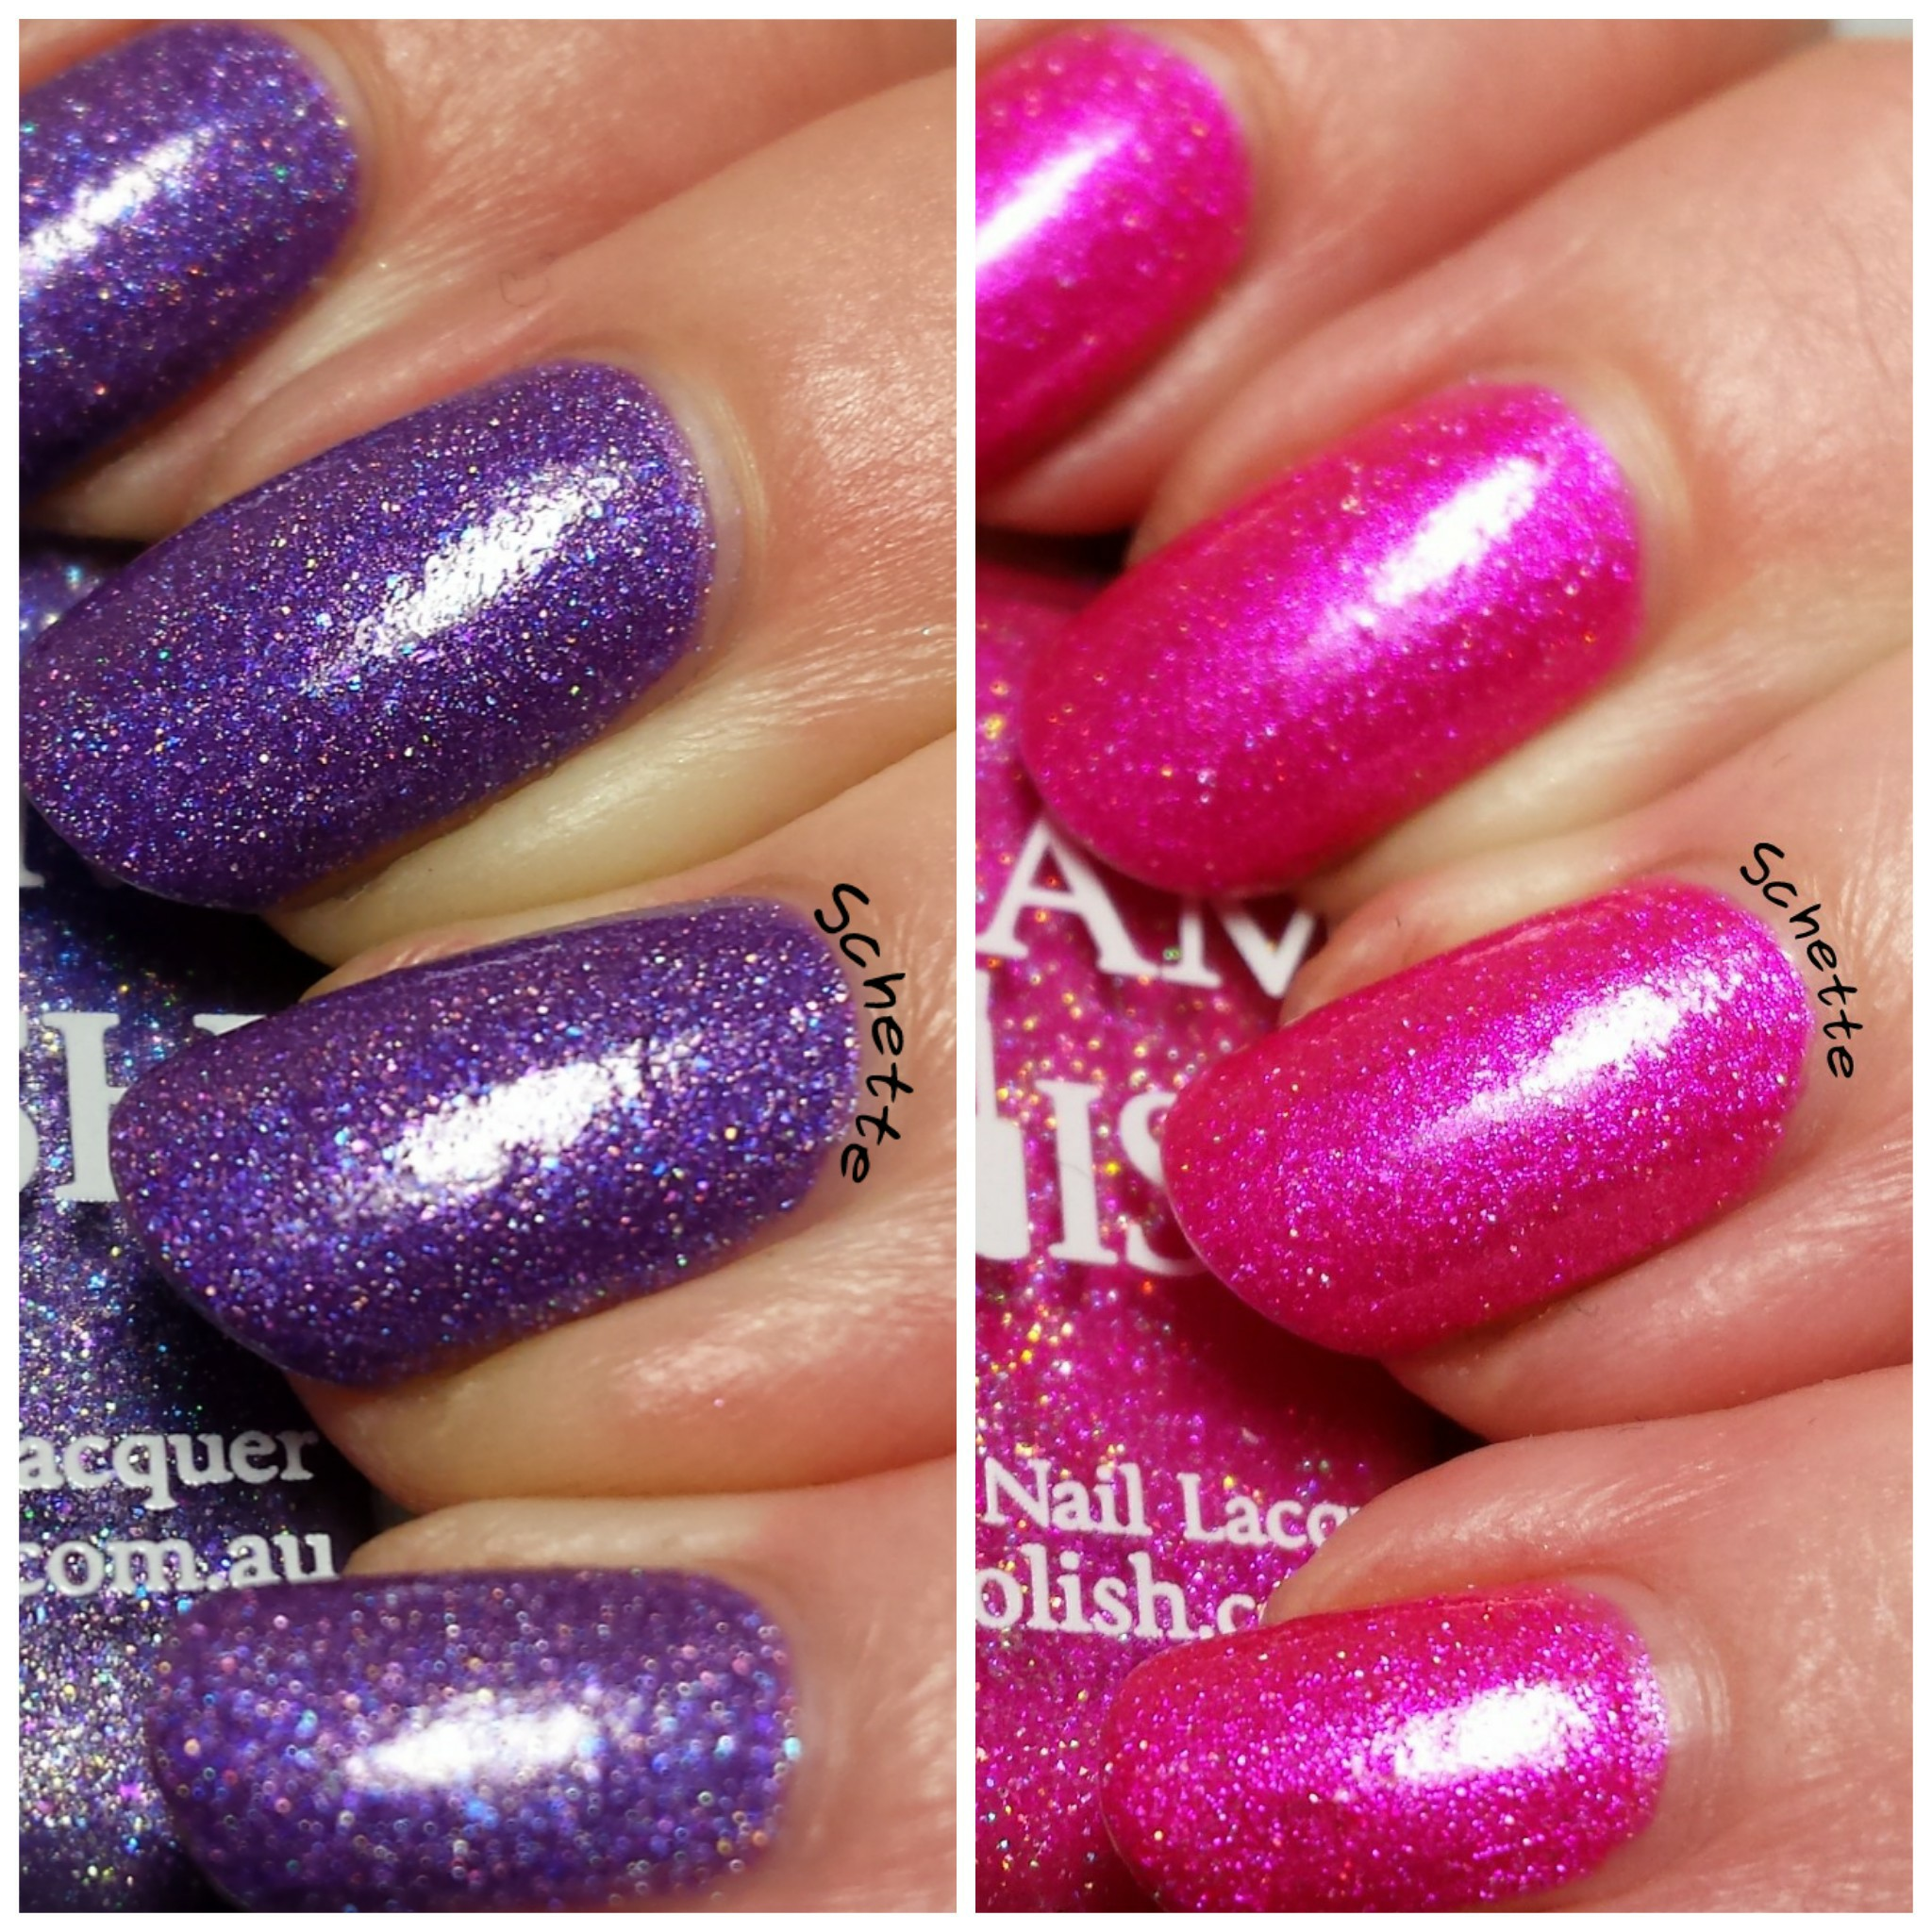 Glam Polish - Fairytale Life Duo - Mei Mei Exclusive